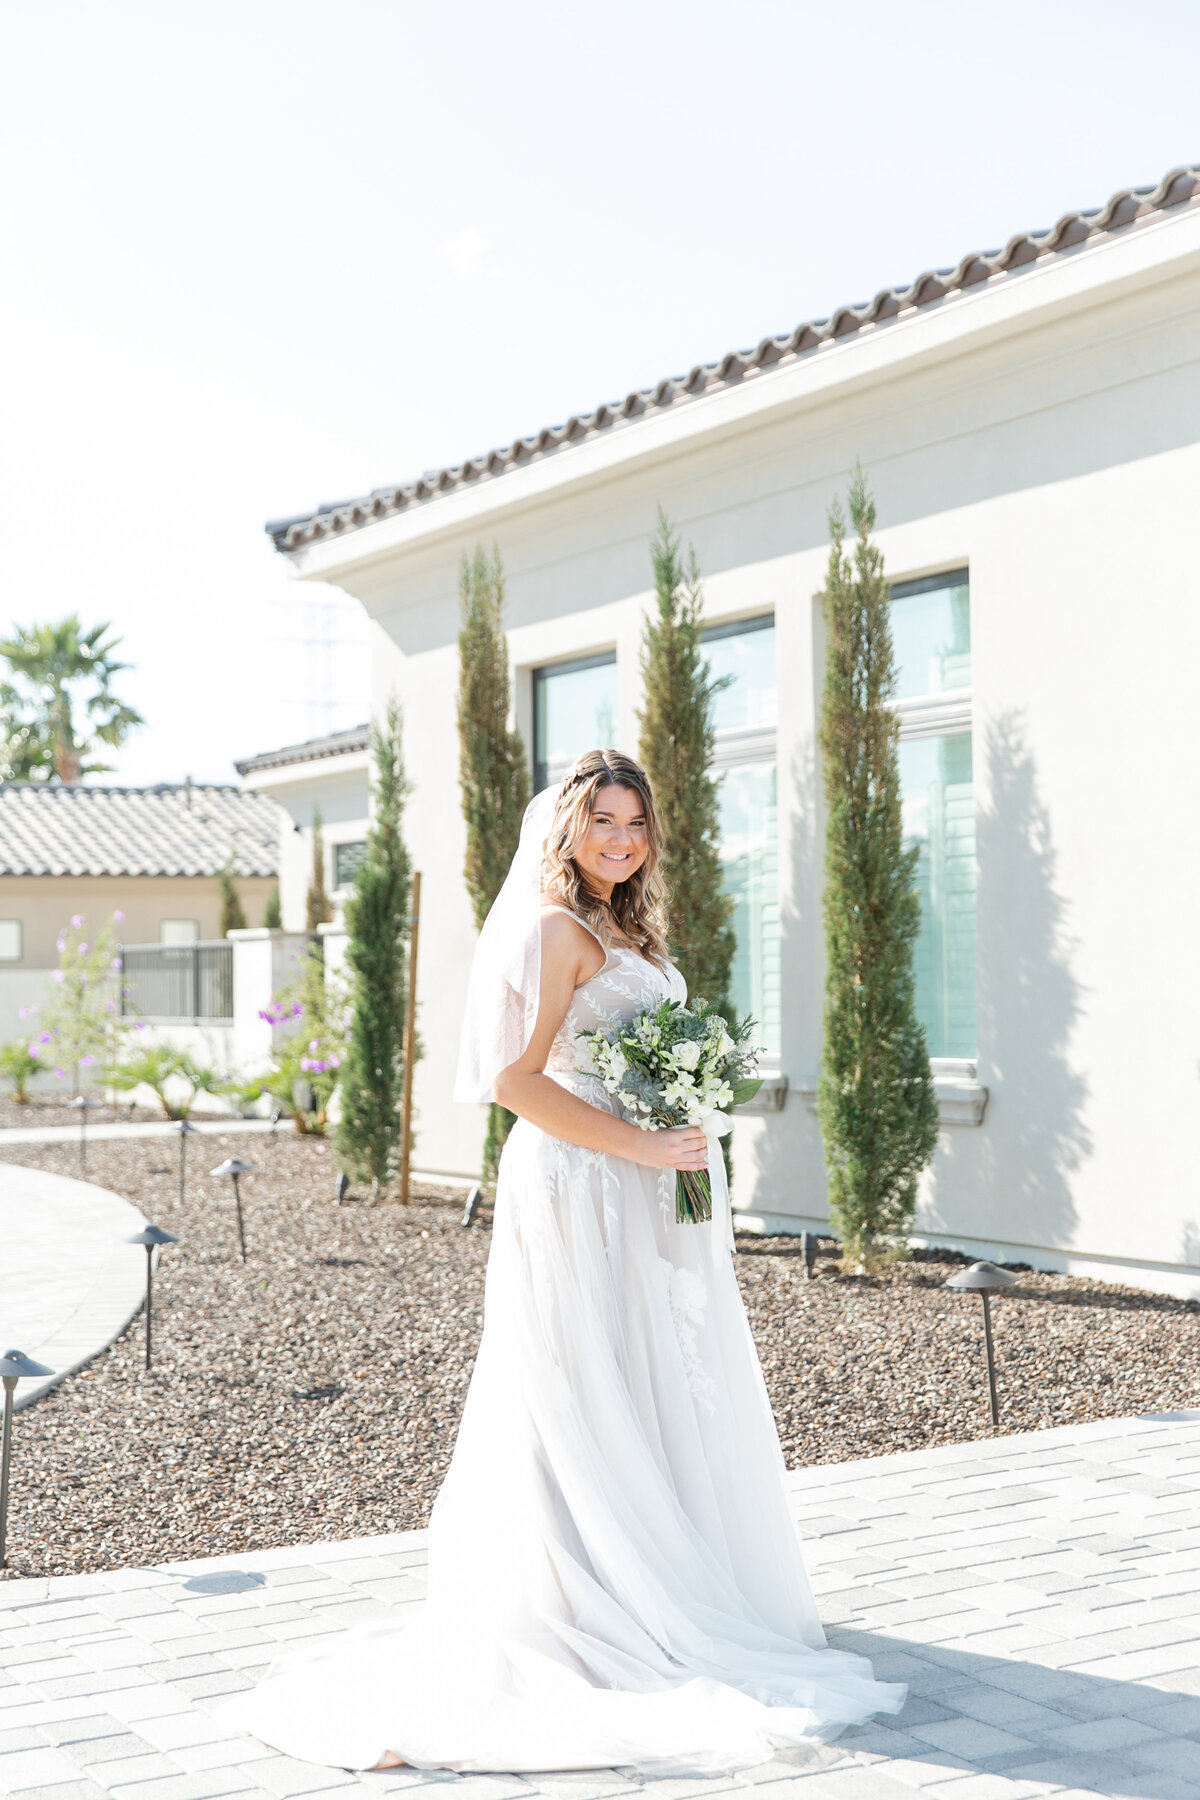 Karlie Colleen Photography - Arizona Backyard wedding - Brittney & Josh-98